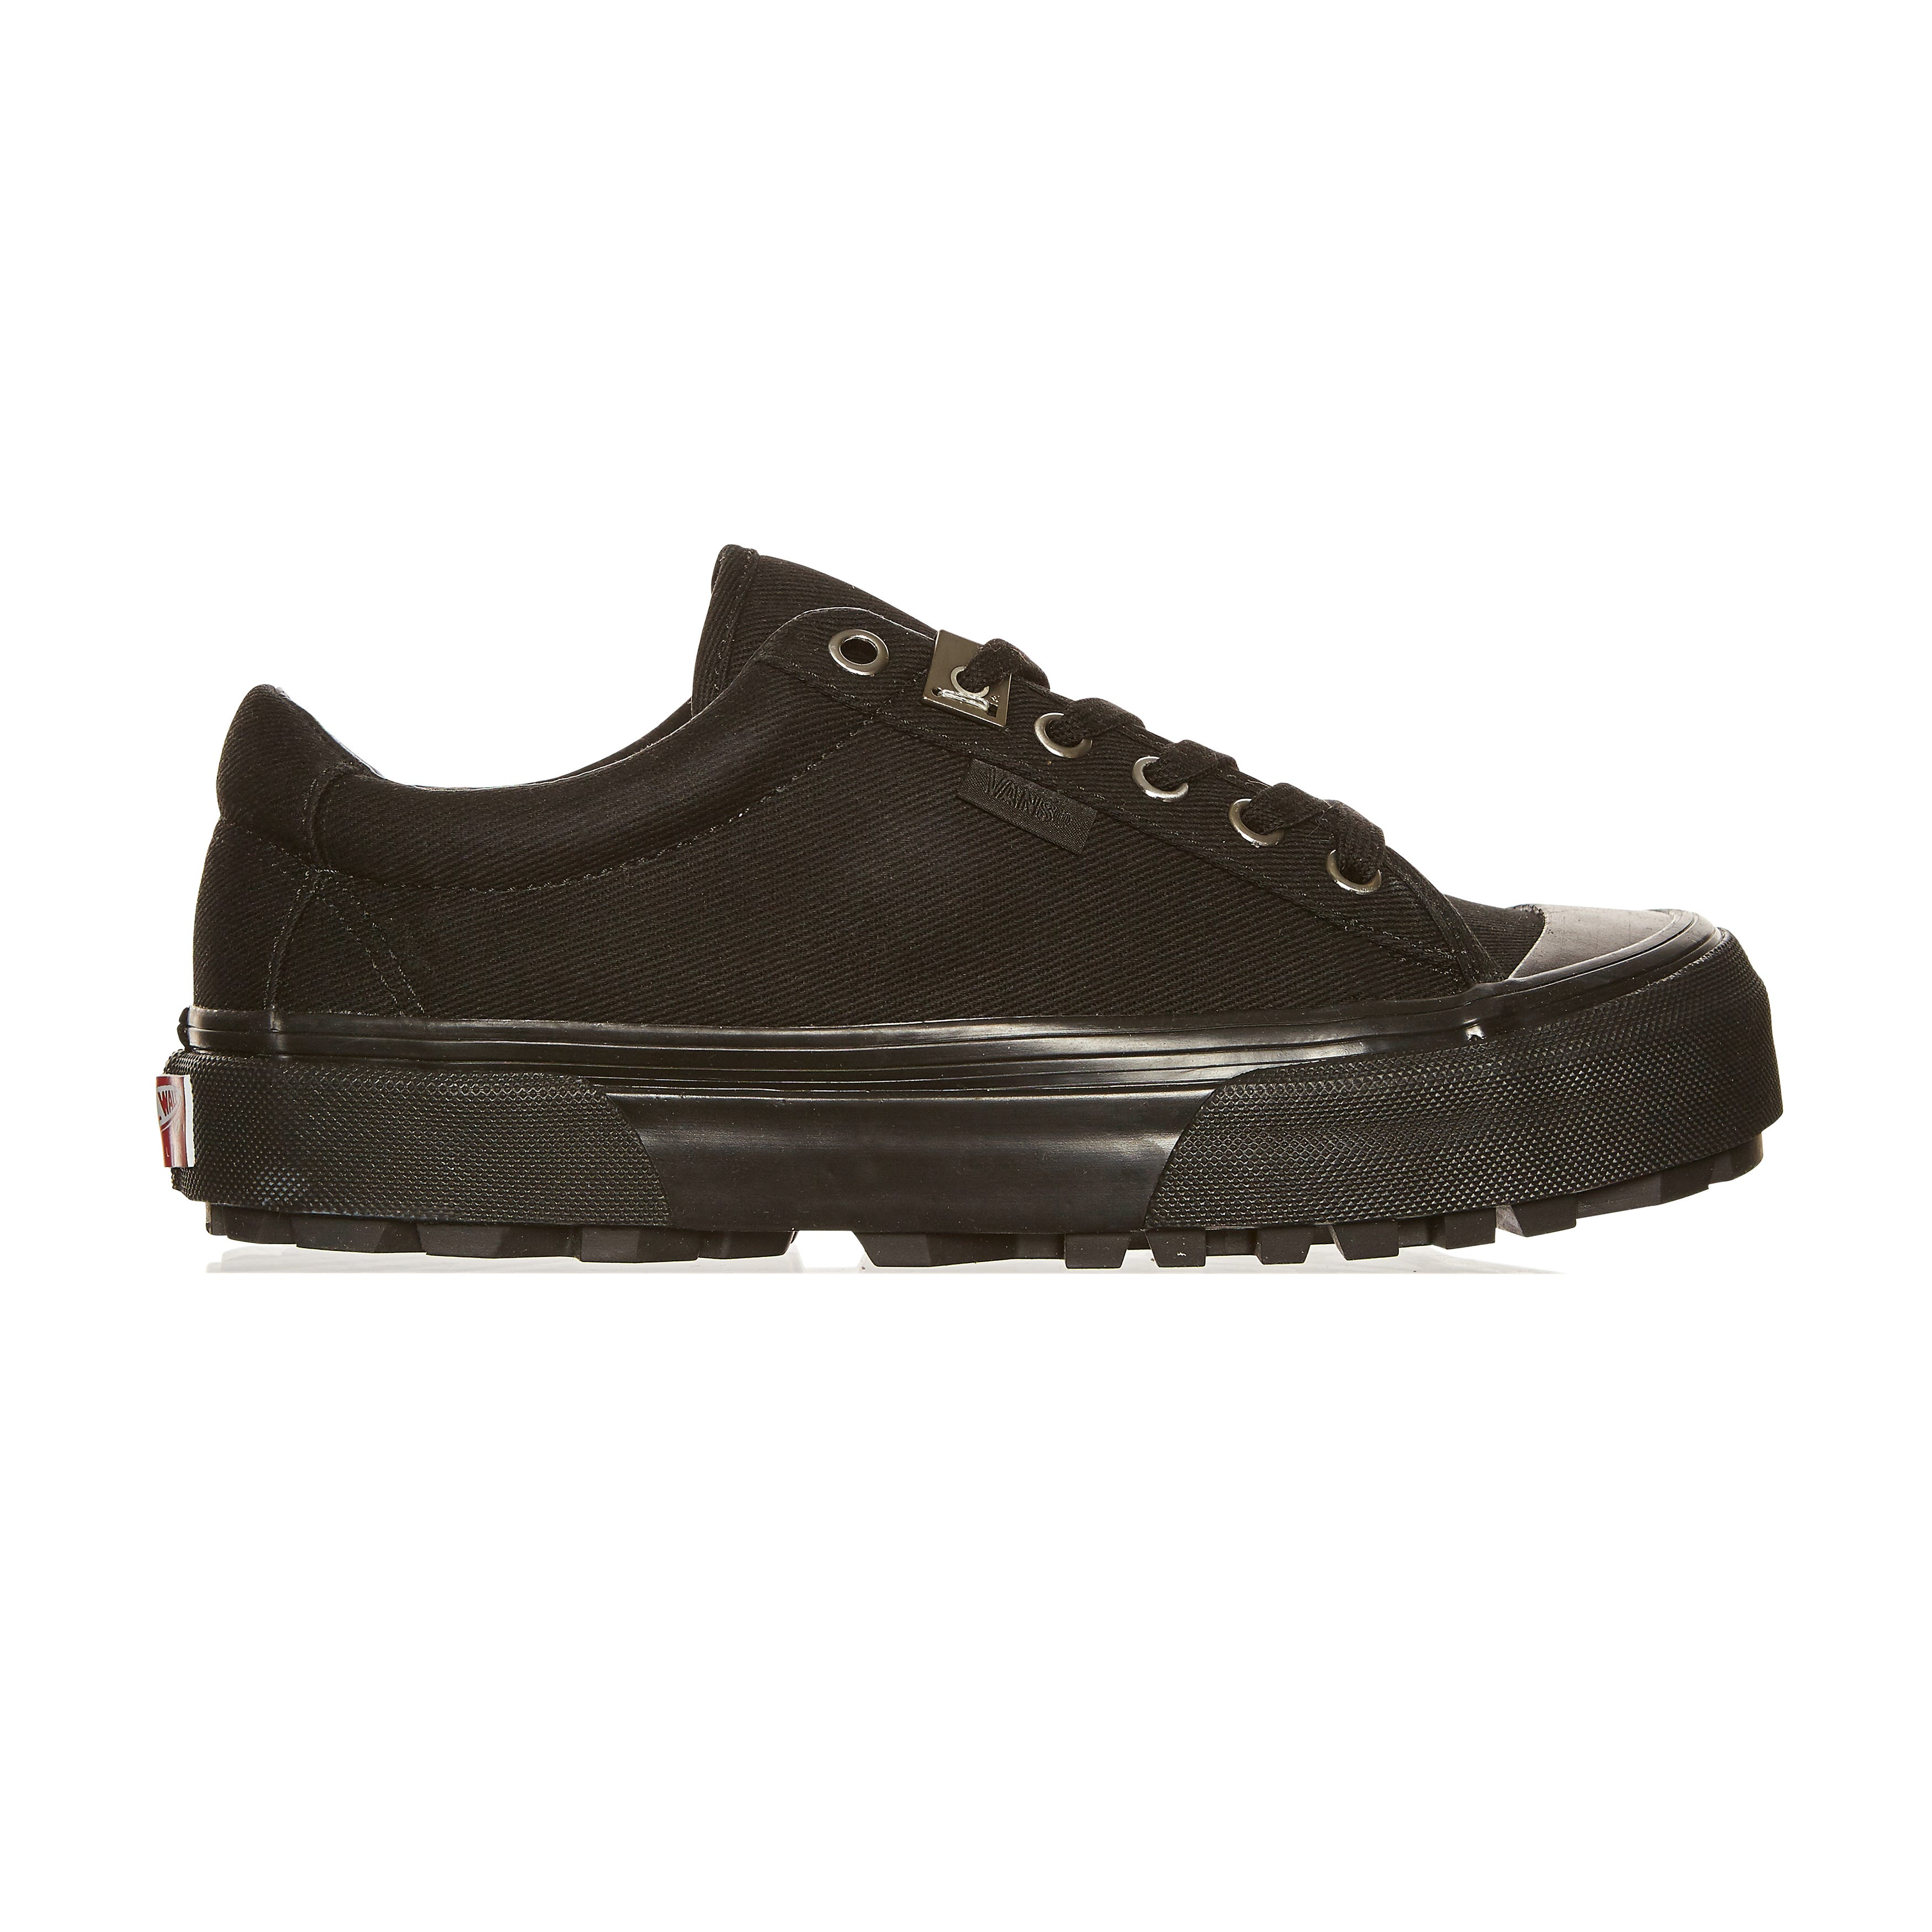 73fa73690 Vans Alyx Sneakers Collaboration New Styles Photos